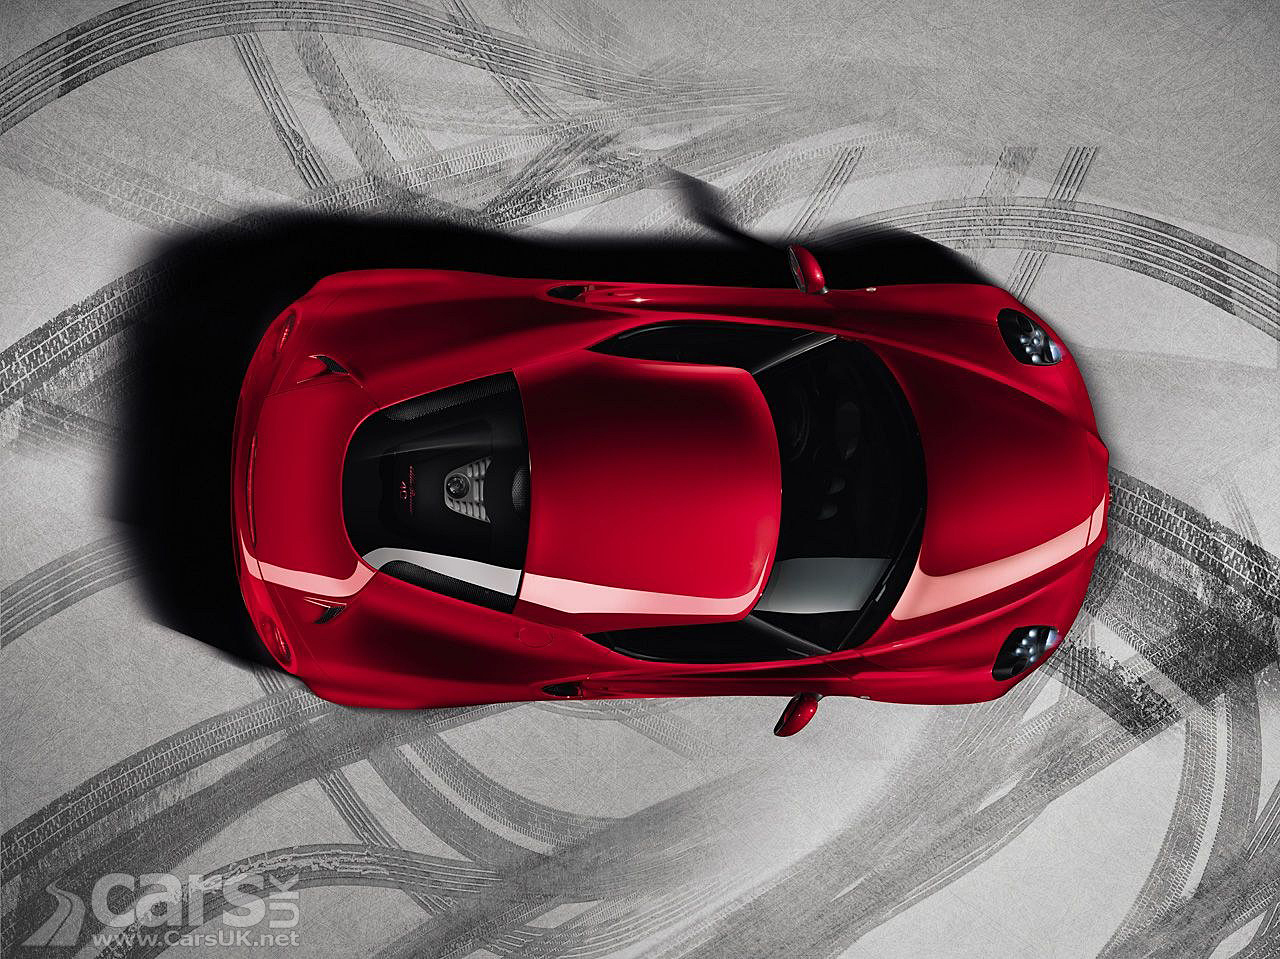 Alfa Romeo 4C production version in red top view image